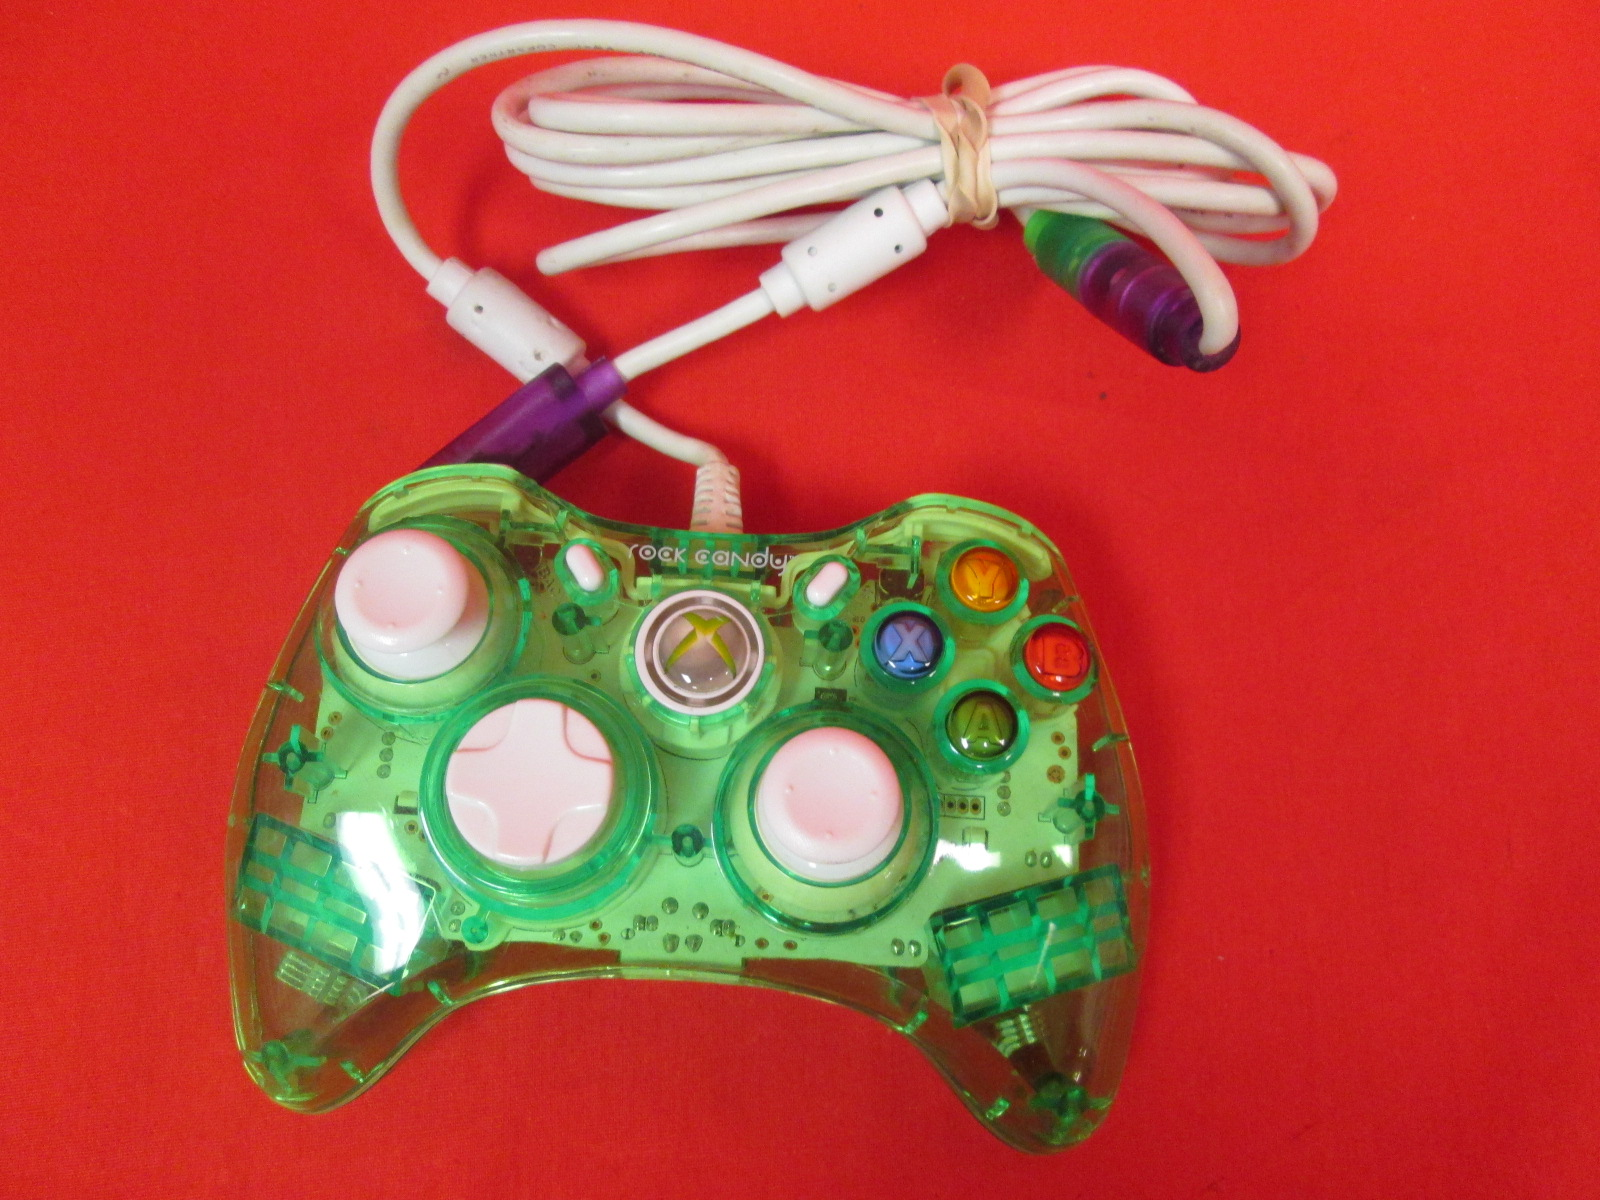 PDP Rock Candy Wired Controller For Xbox 360 Aqualime